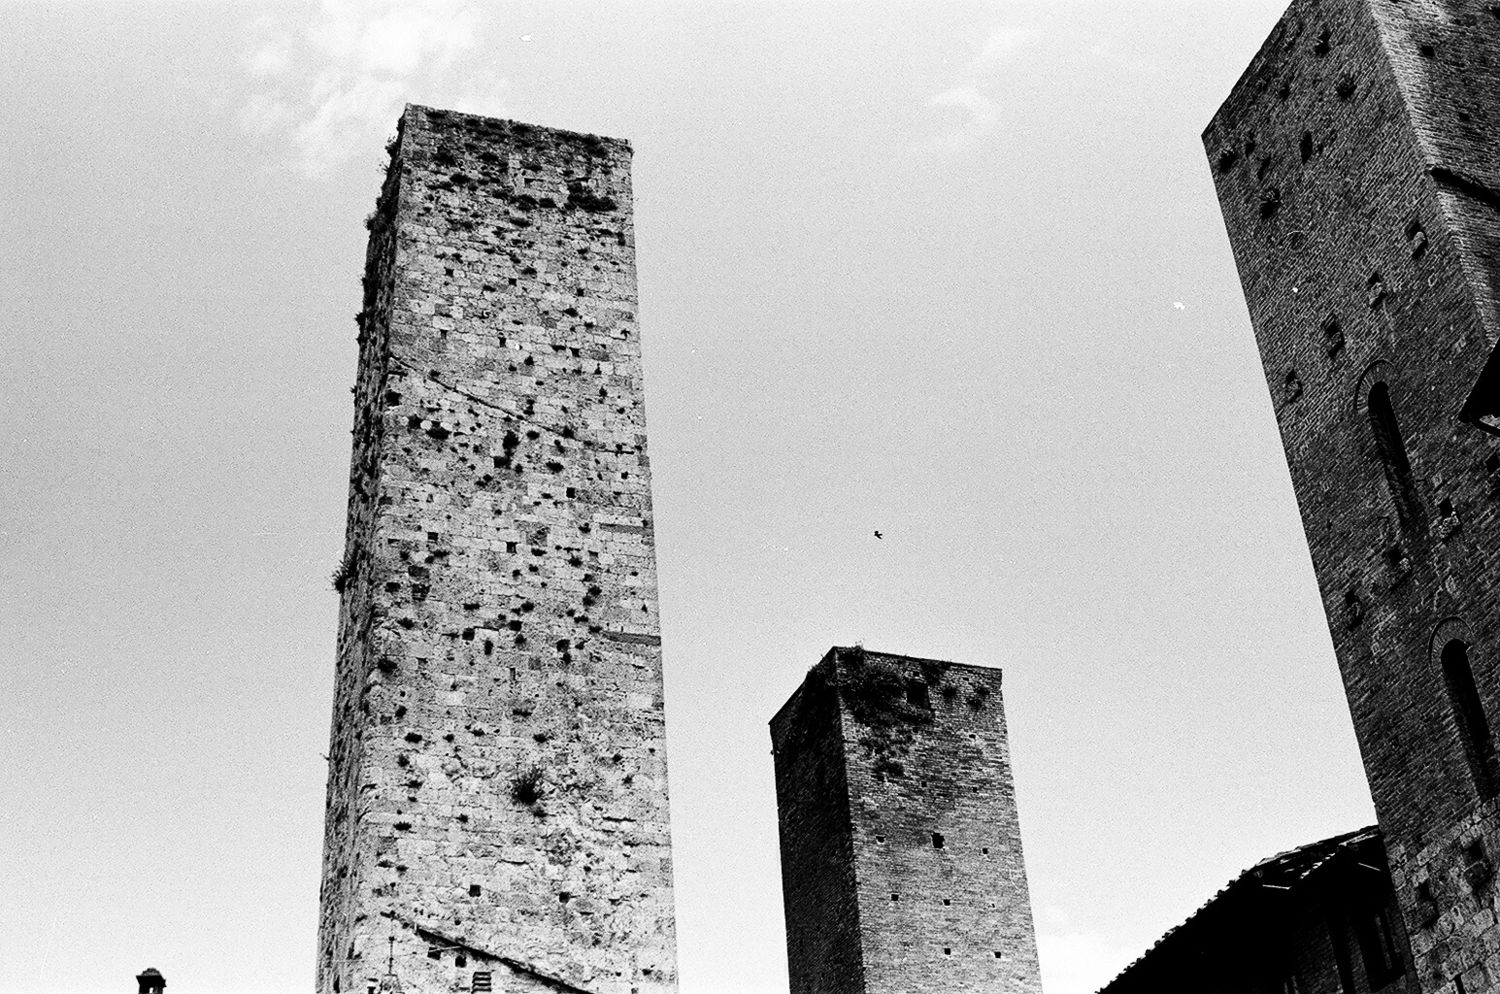 Towers, Italy 2010   Edition 1 of 2